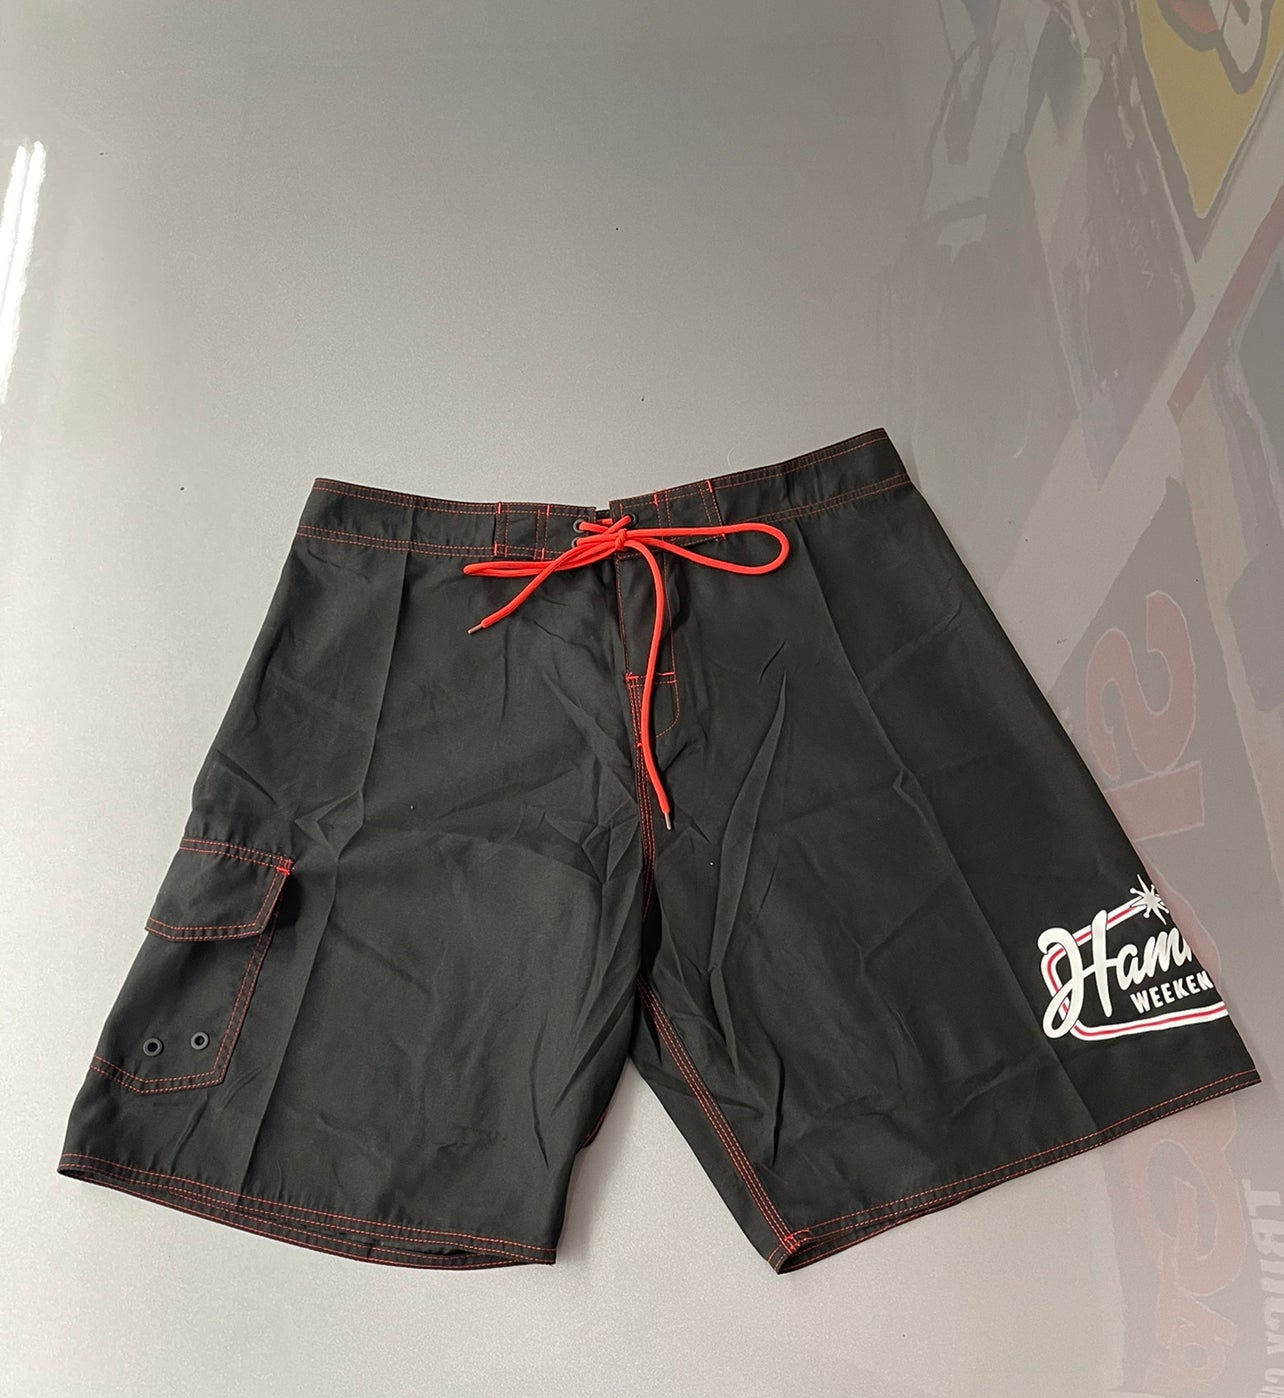 Image of Pool trunks